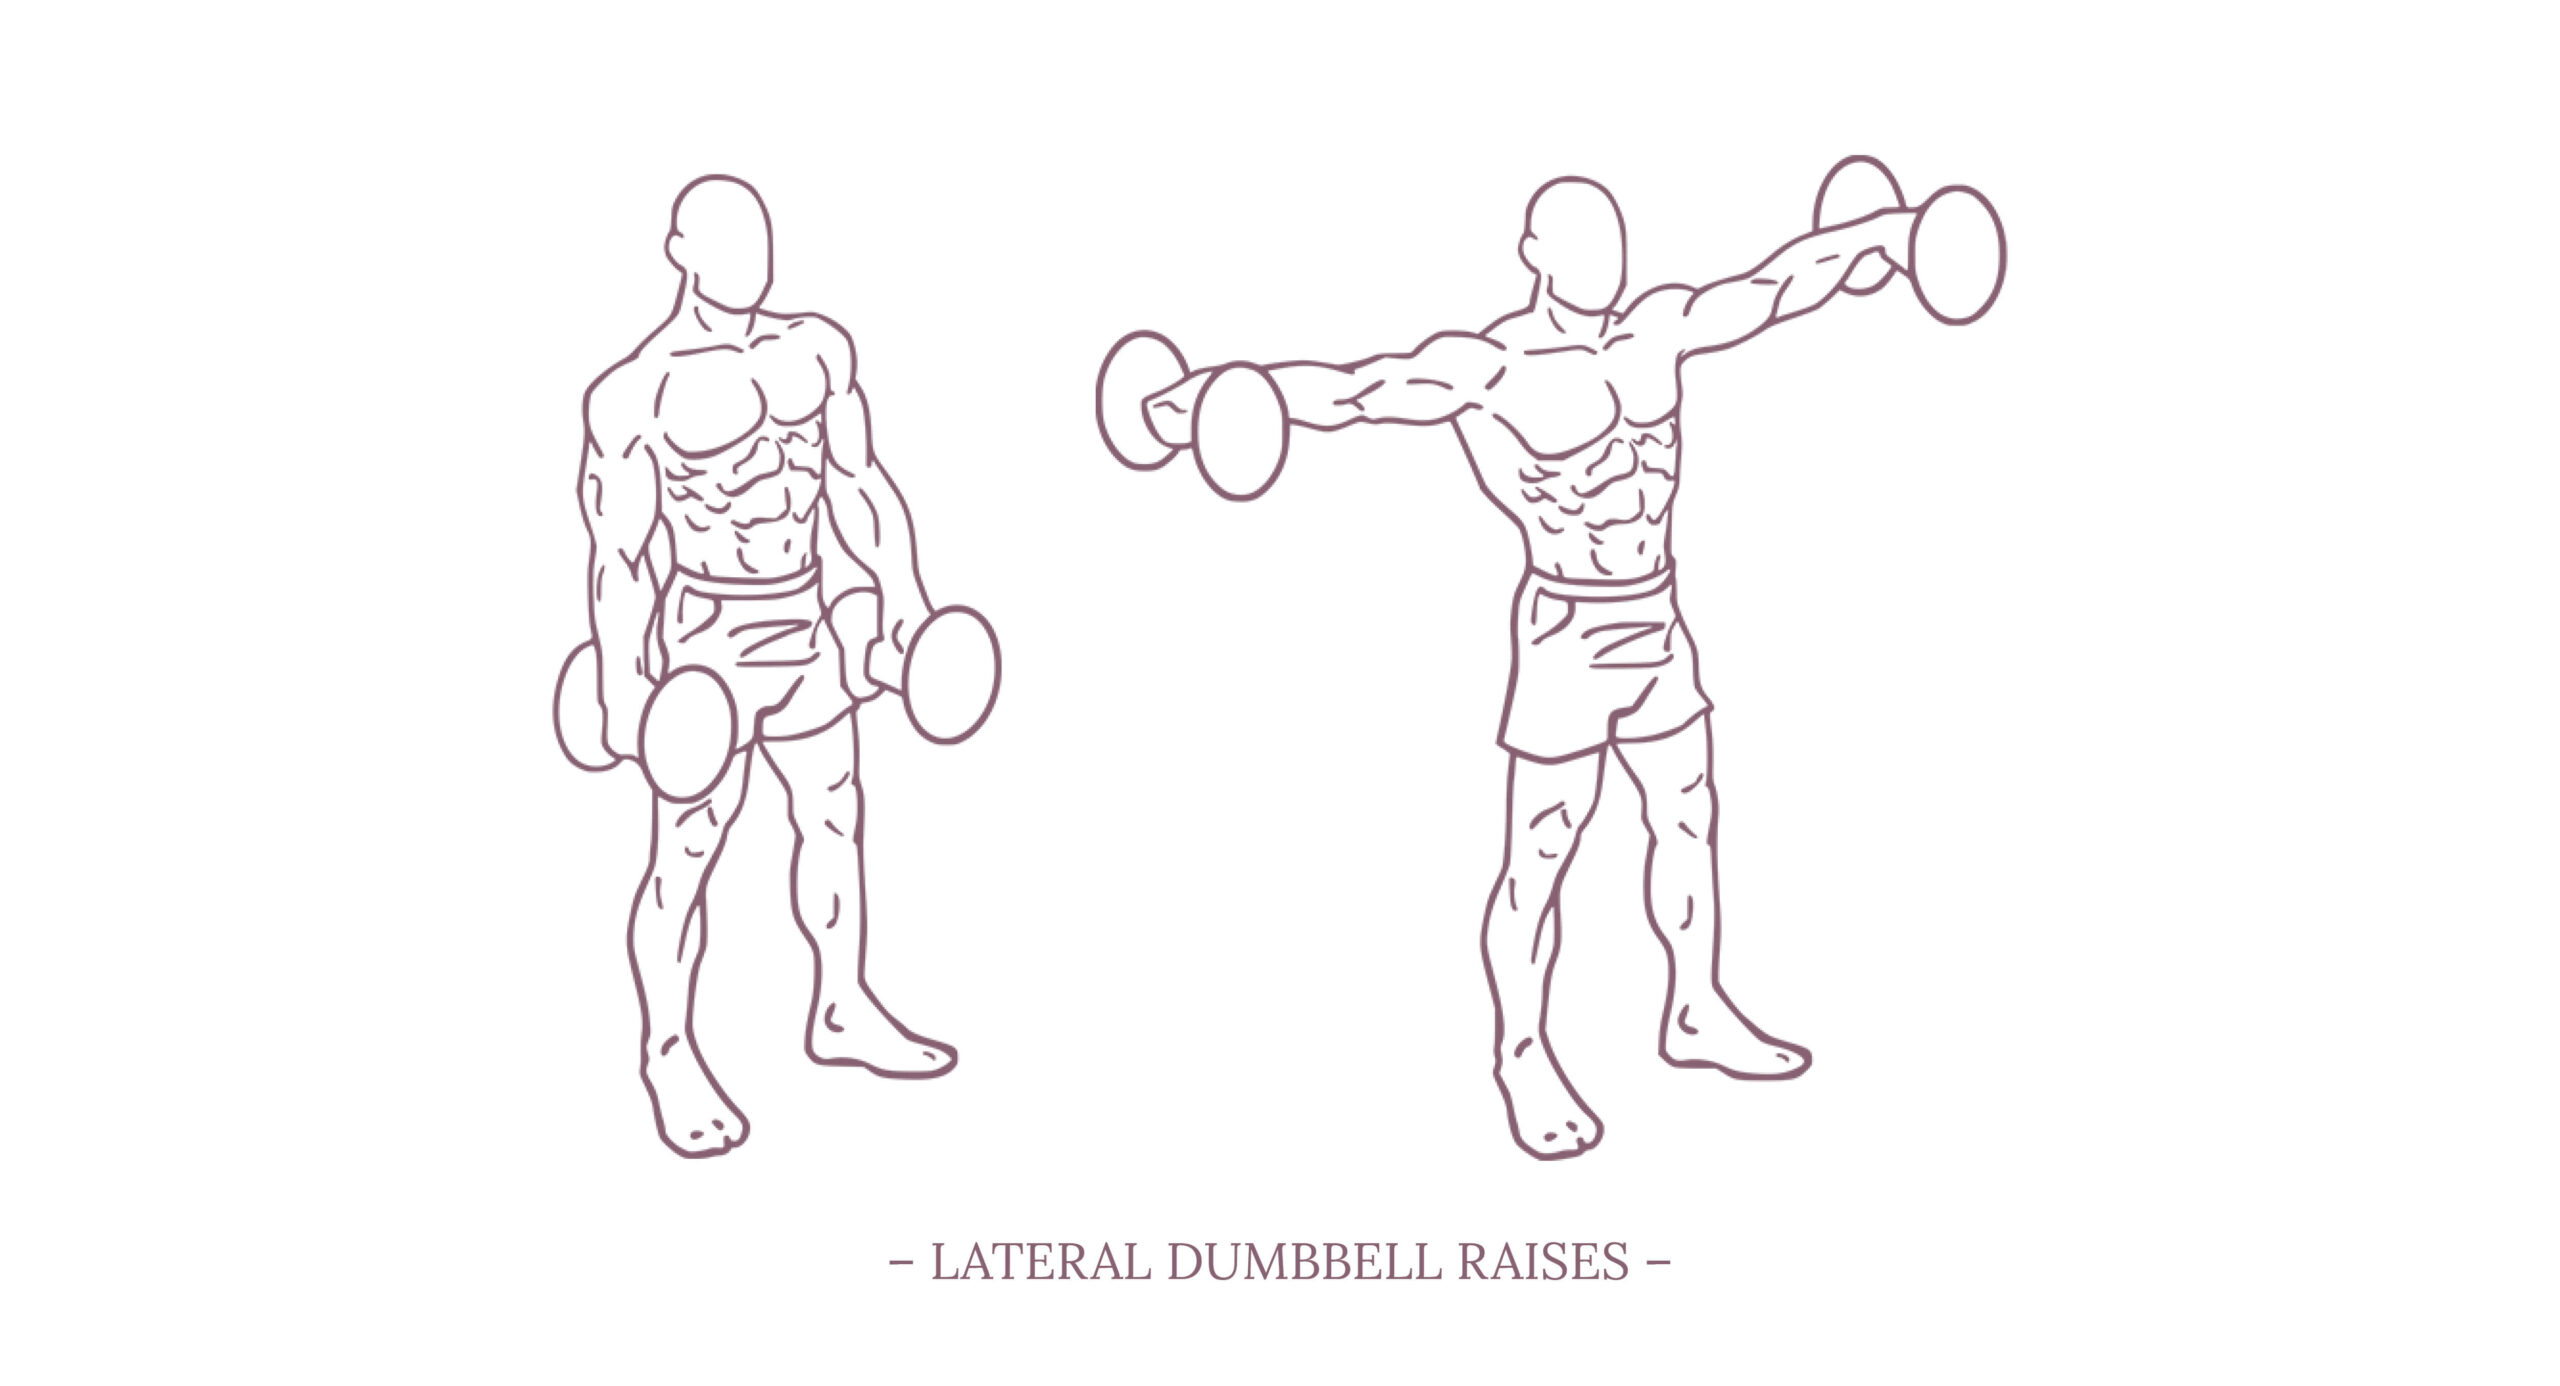 Lateral Dumbbell Raises Illustration